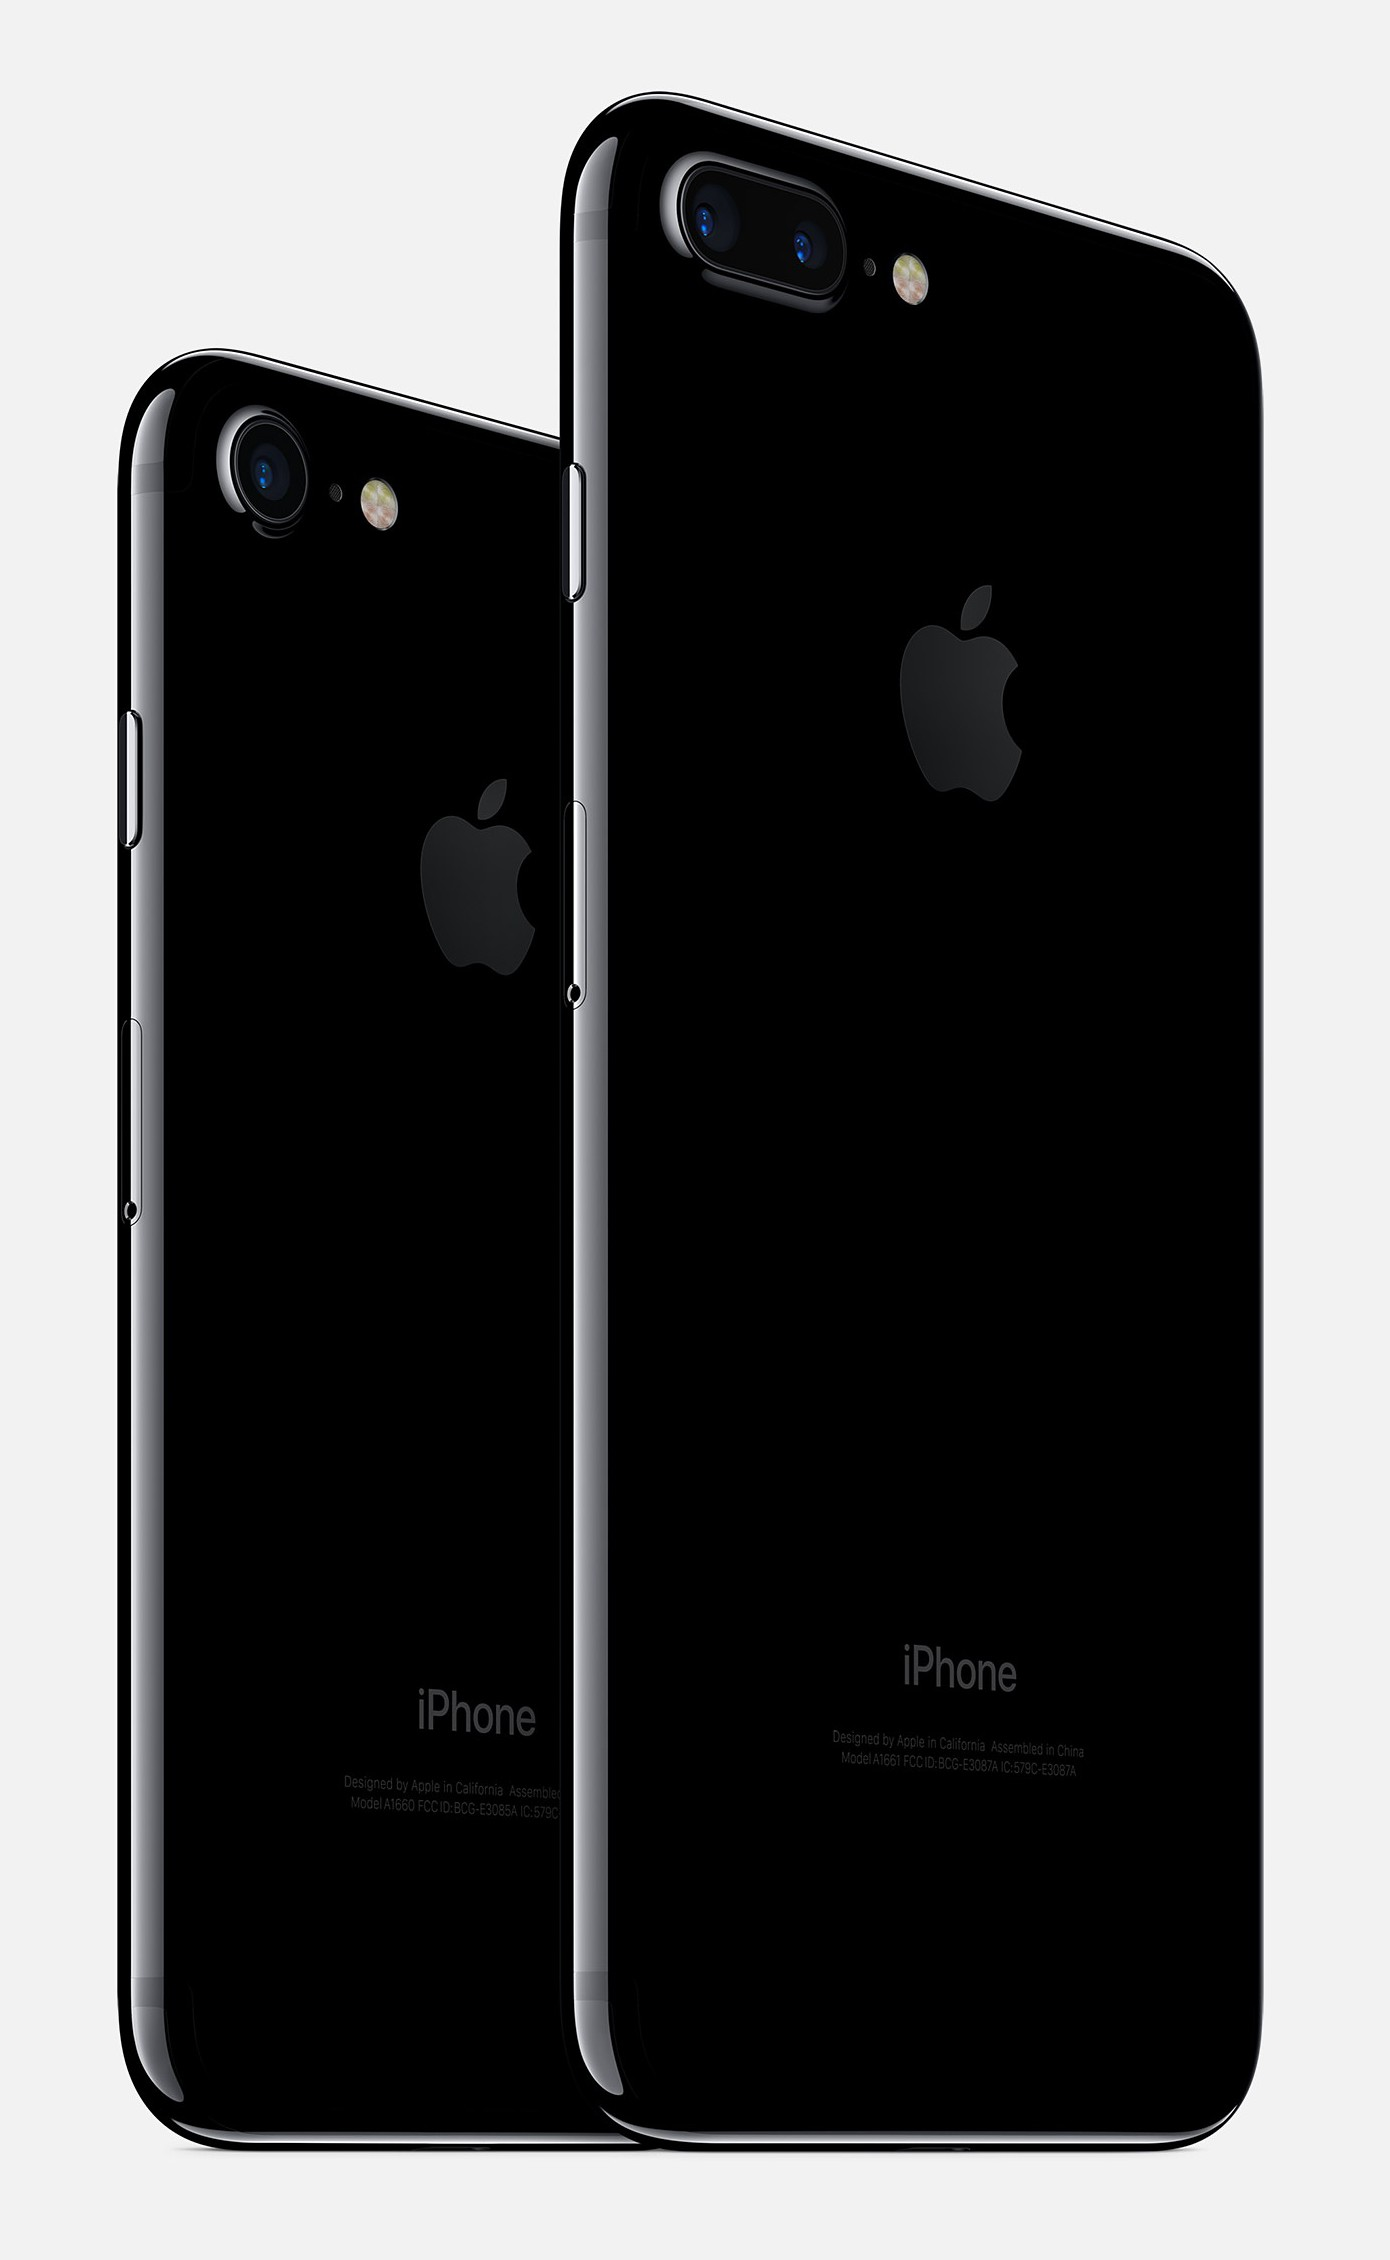 das neue iphone 7 und iphone 7 plus in diamantschwarz blog. Black Bedroom Furniture Sets. Home Design Ideas